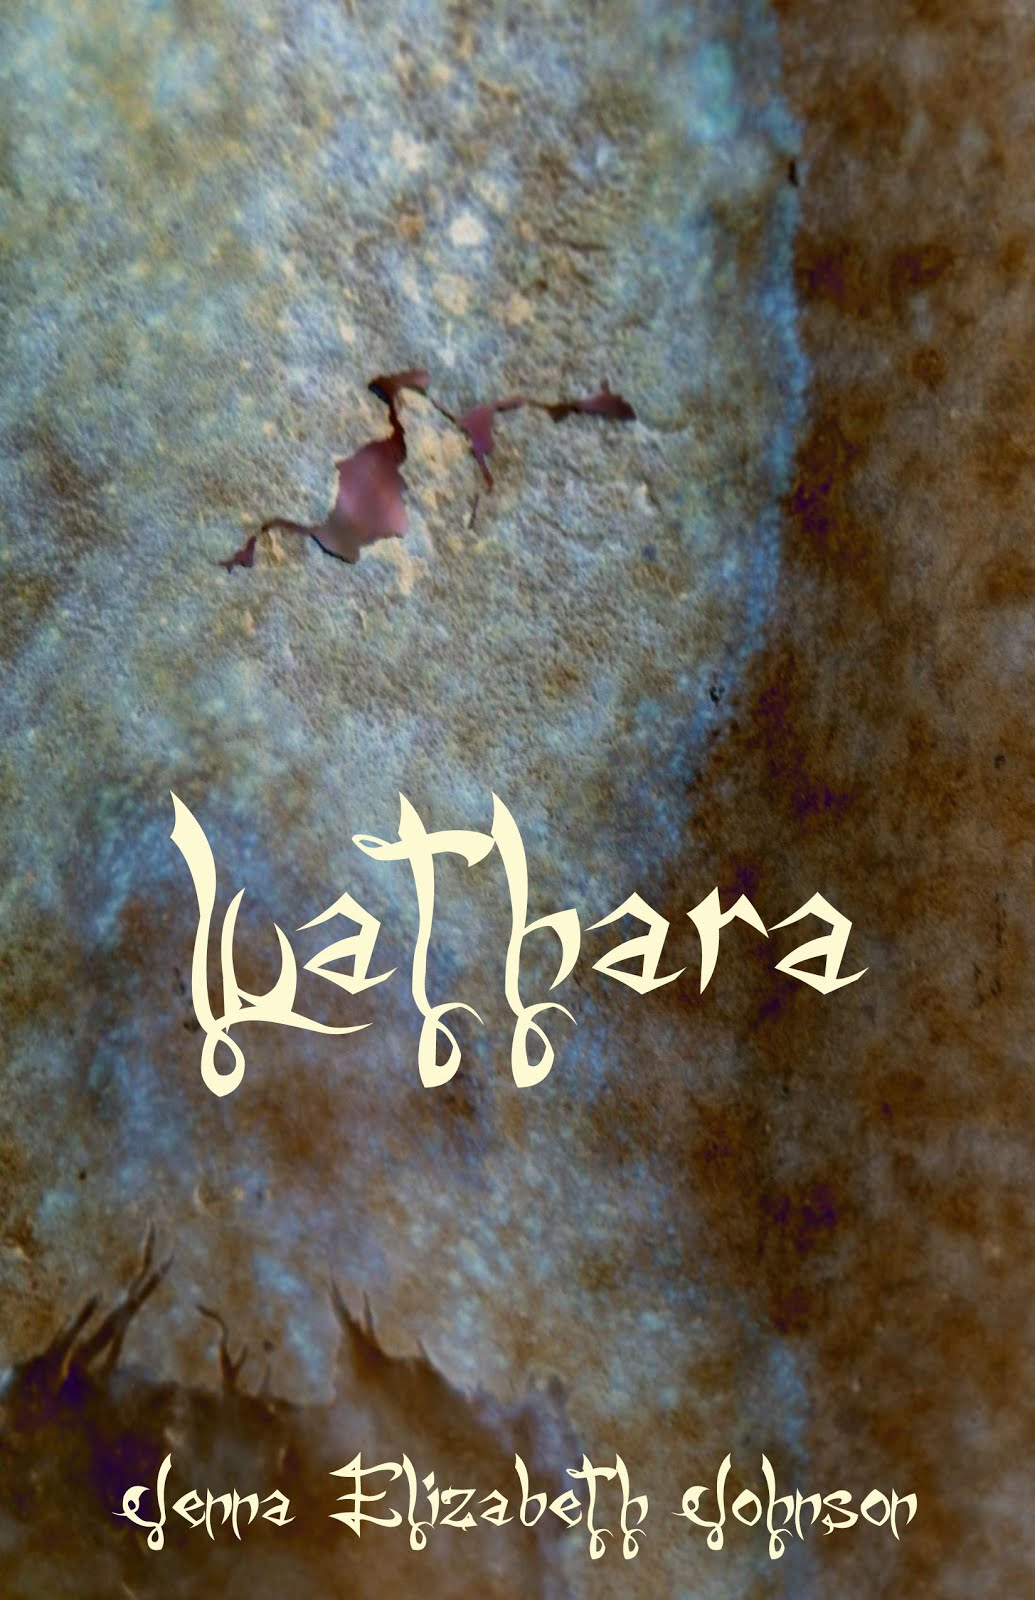 Meghan's Story Continues In Luathara, The Thrilling Conclusion To The  Otherworld Trilogy